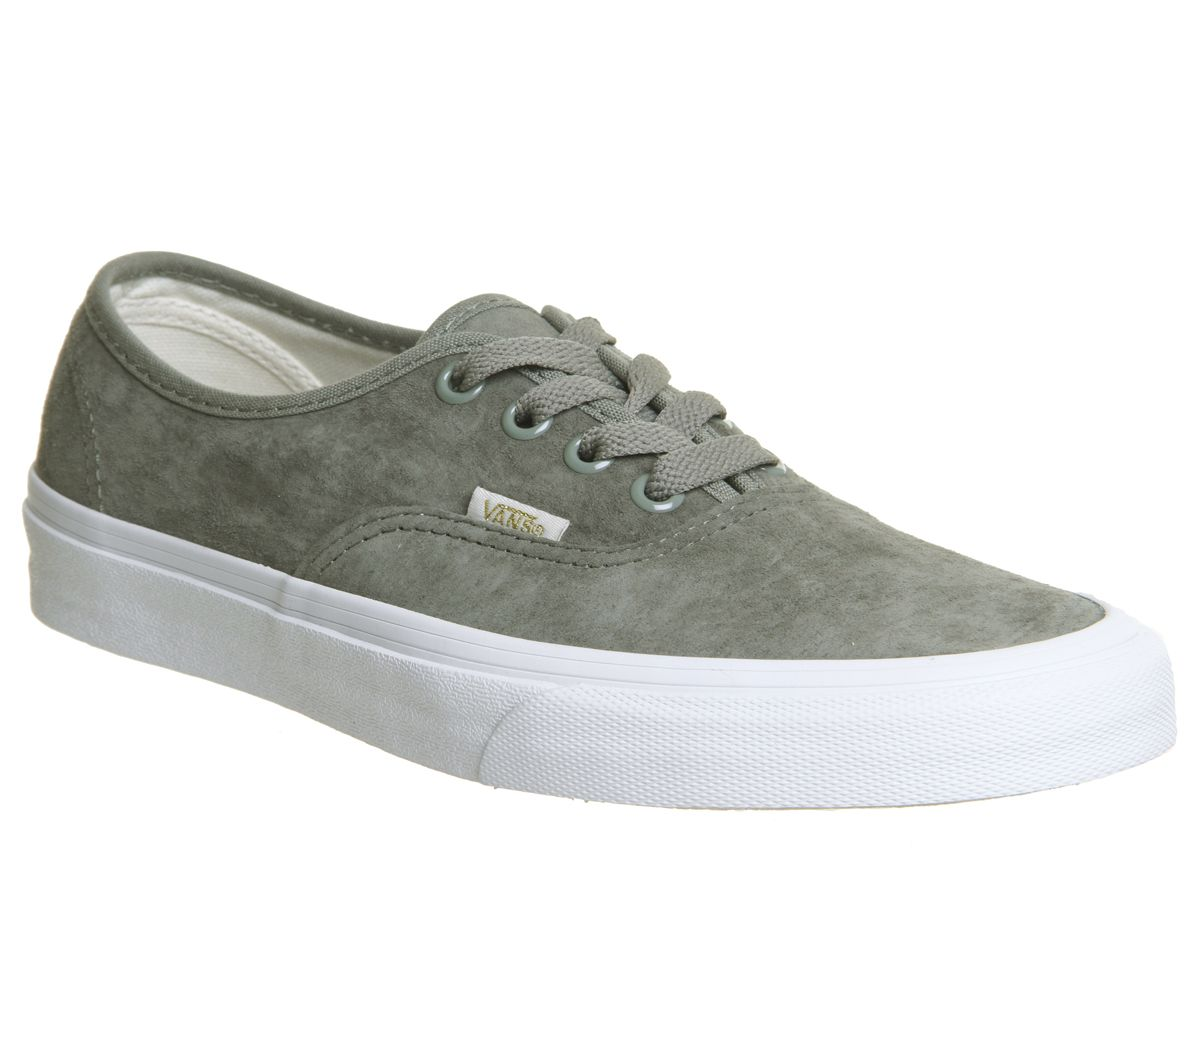 fc08763ec9 Vans Authentic Trainers Vetiver Eggnog True White - Hers trainers